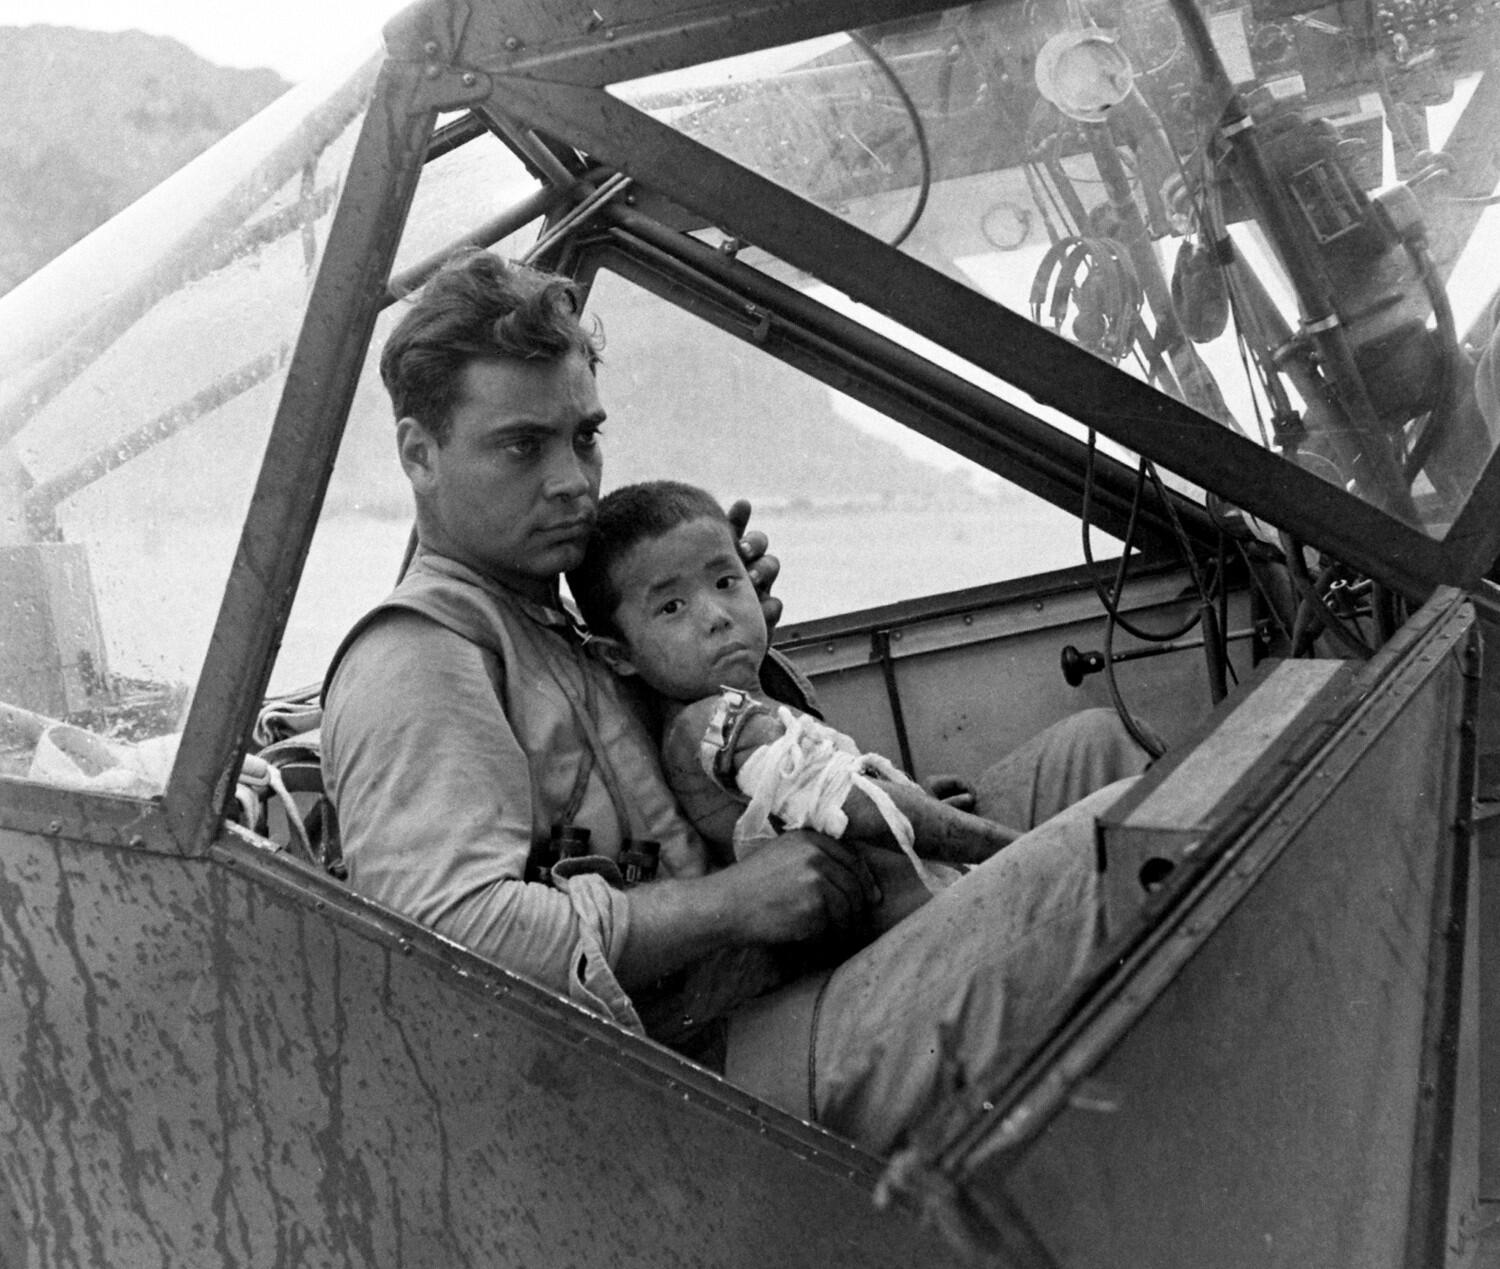 A wounded Japanese child and an American pilot, Saipan, 1944. #WWII http://t.co/s1DrXsW2TD